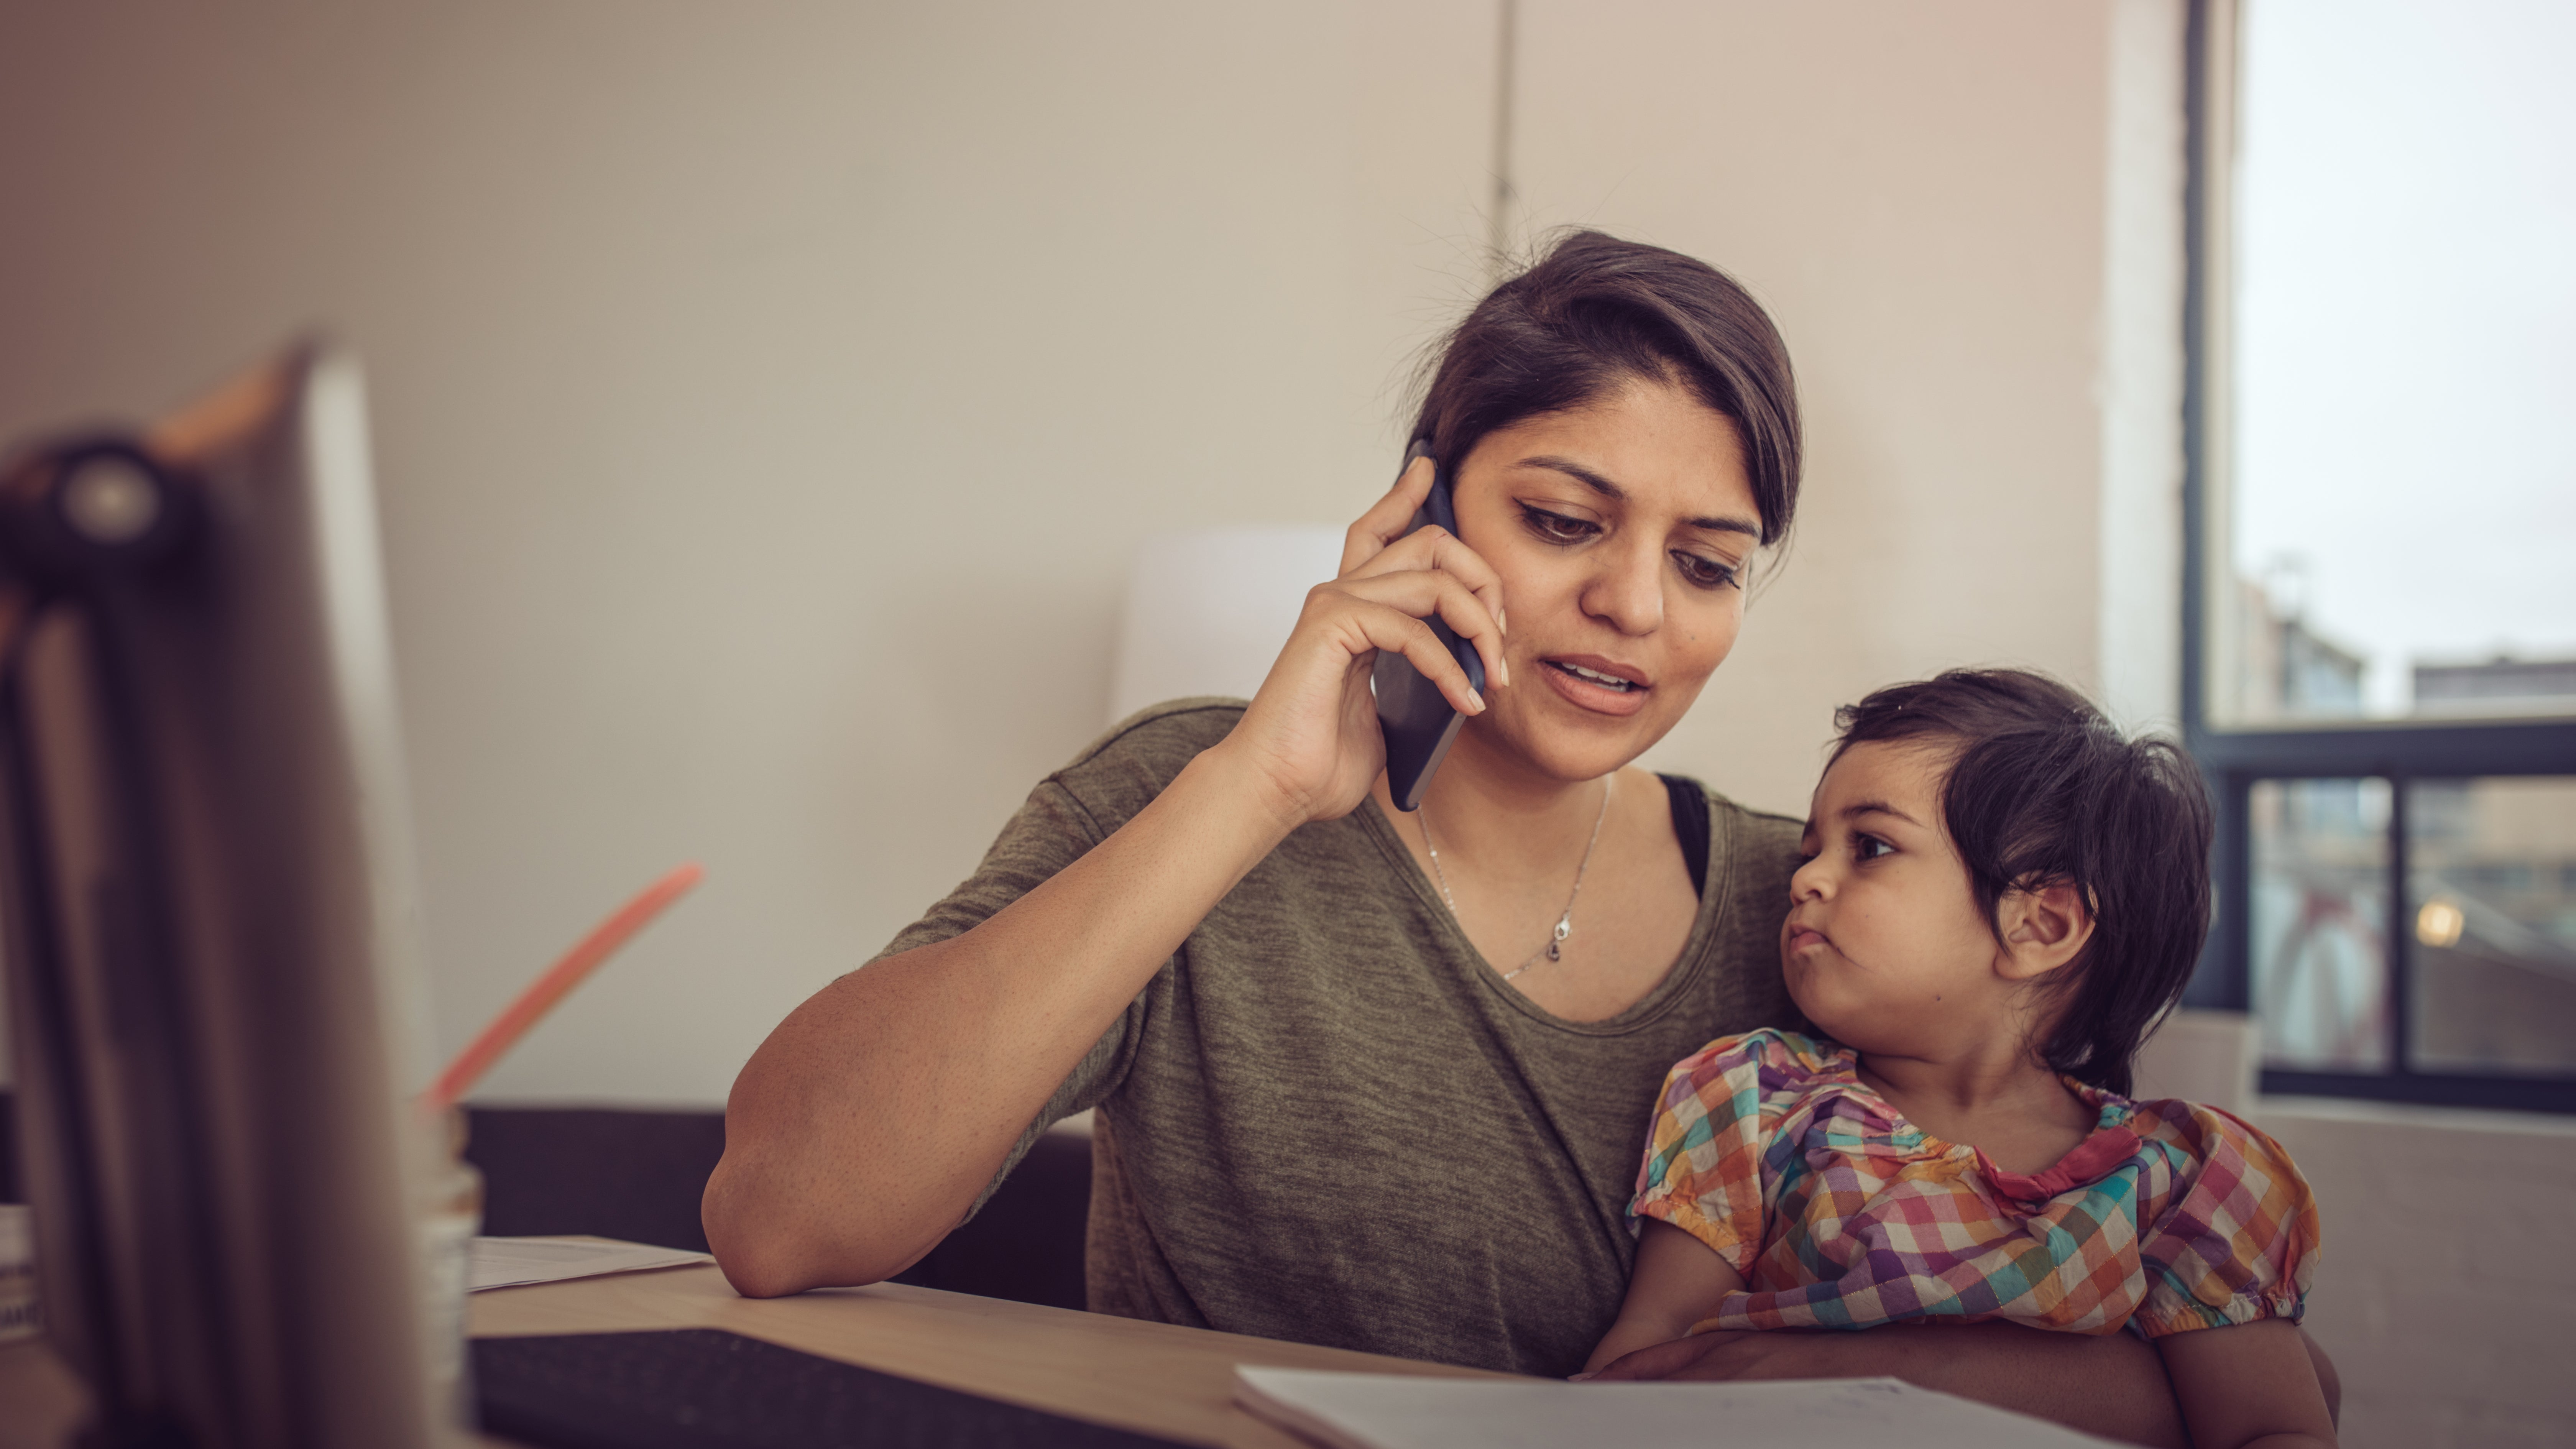 Disclose That Your Kid Is With You When You Start A Phone Meeting